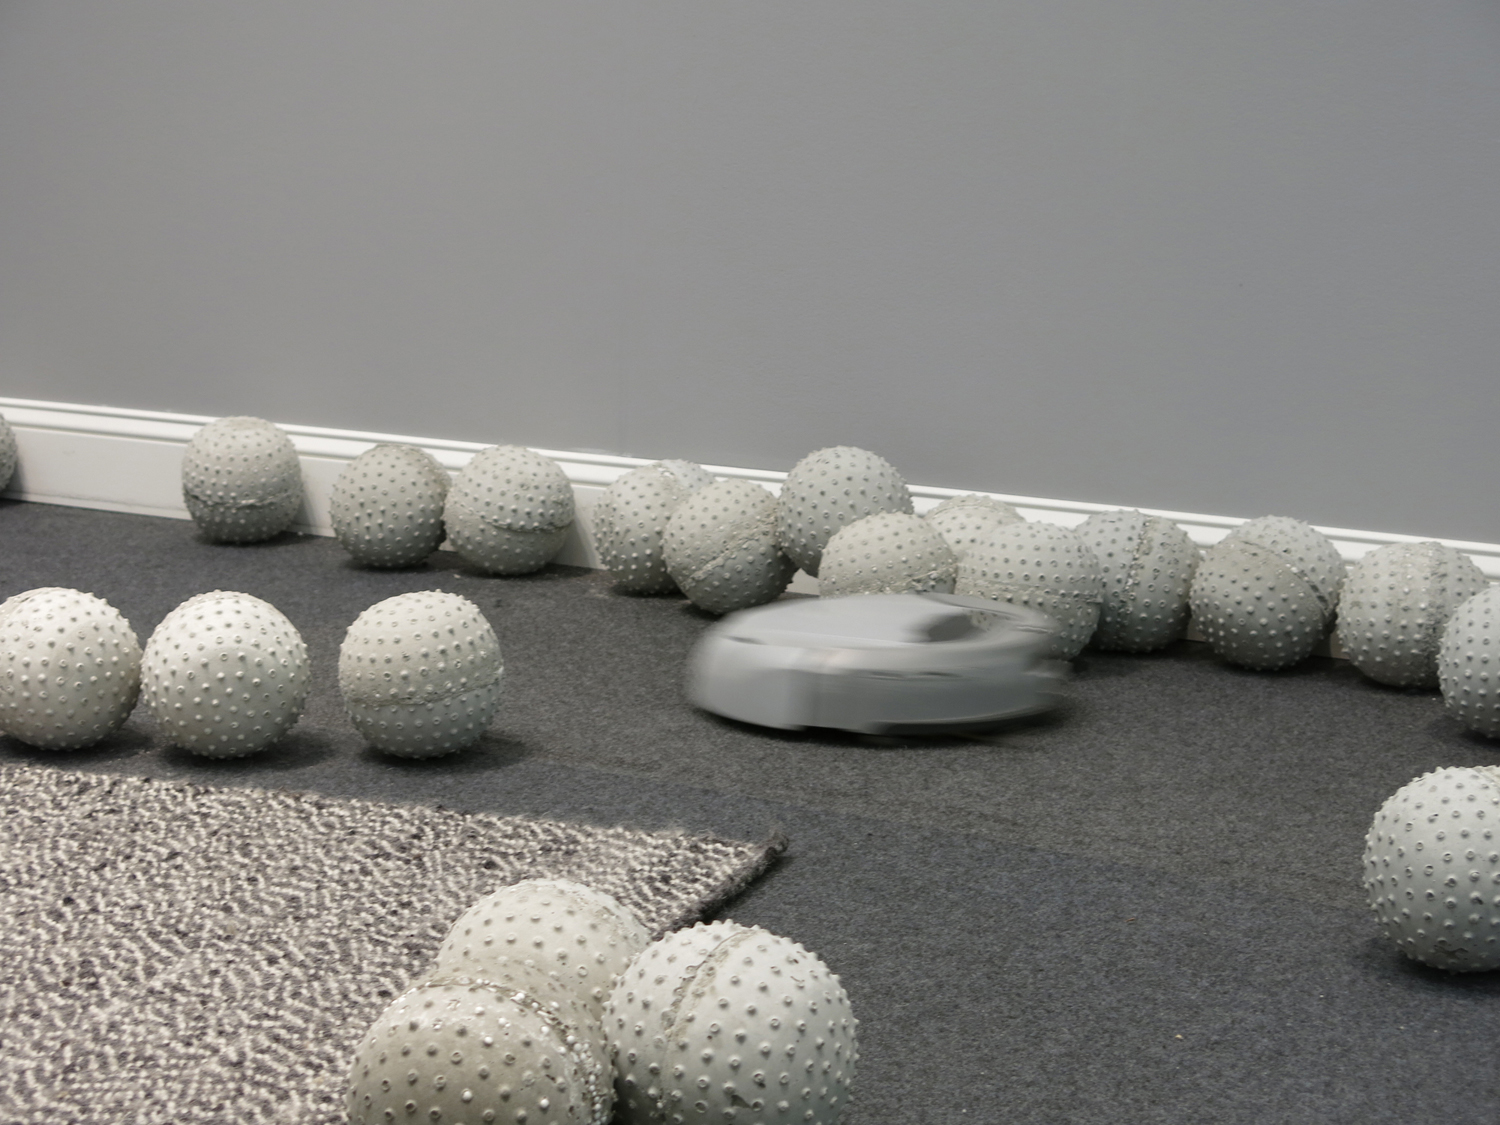 Nadim Abbas, Zone I, 2014. Lightweight concrete casts, robotic vacuum cleaner, rug, skirting board, house paint. Dimensions variable.